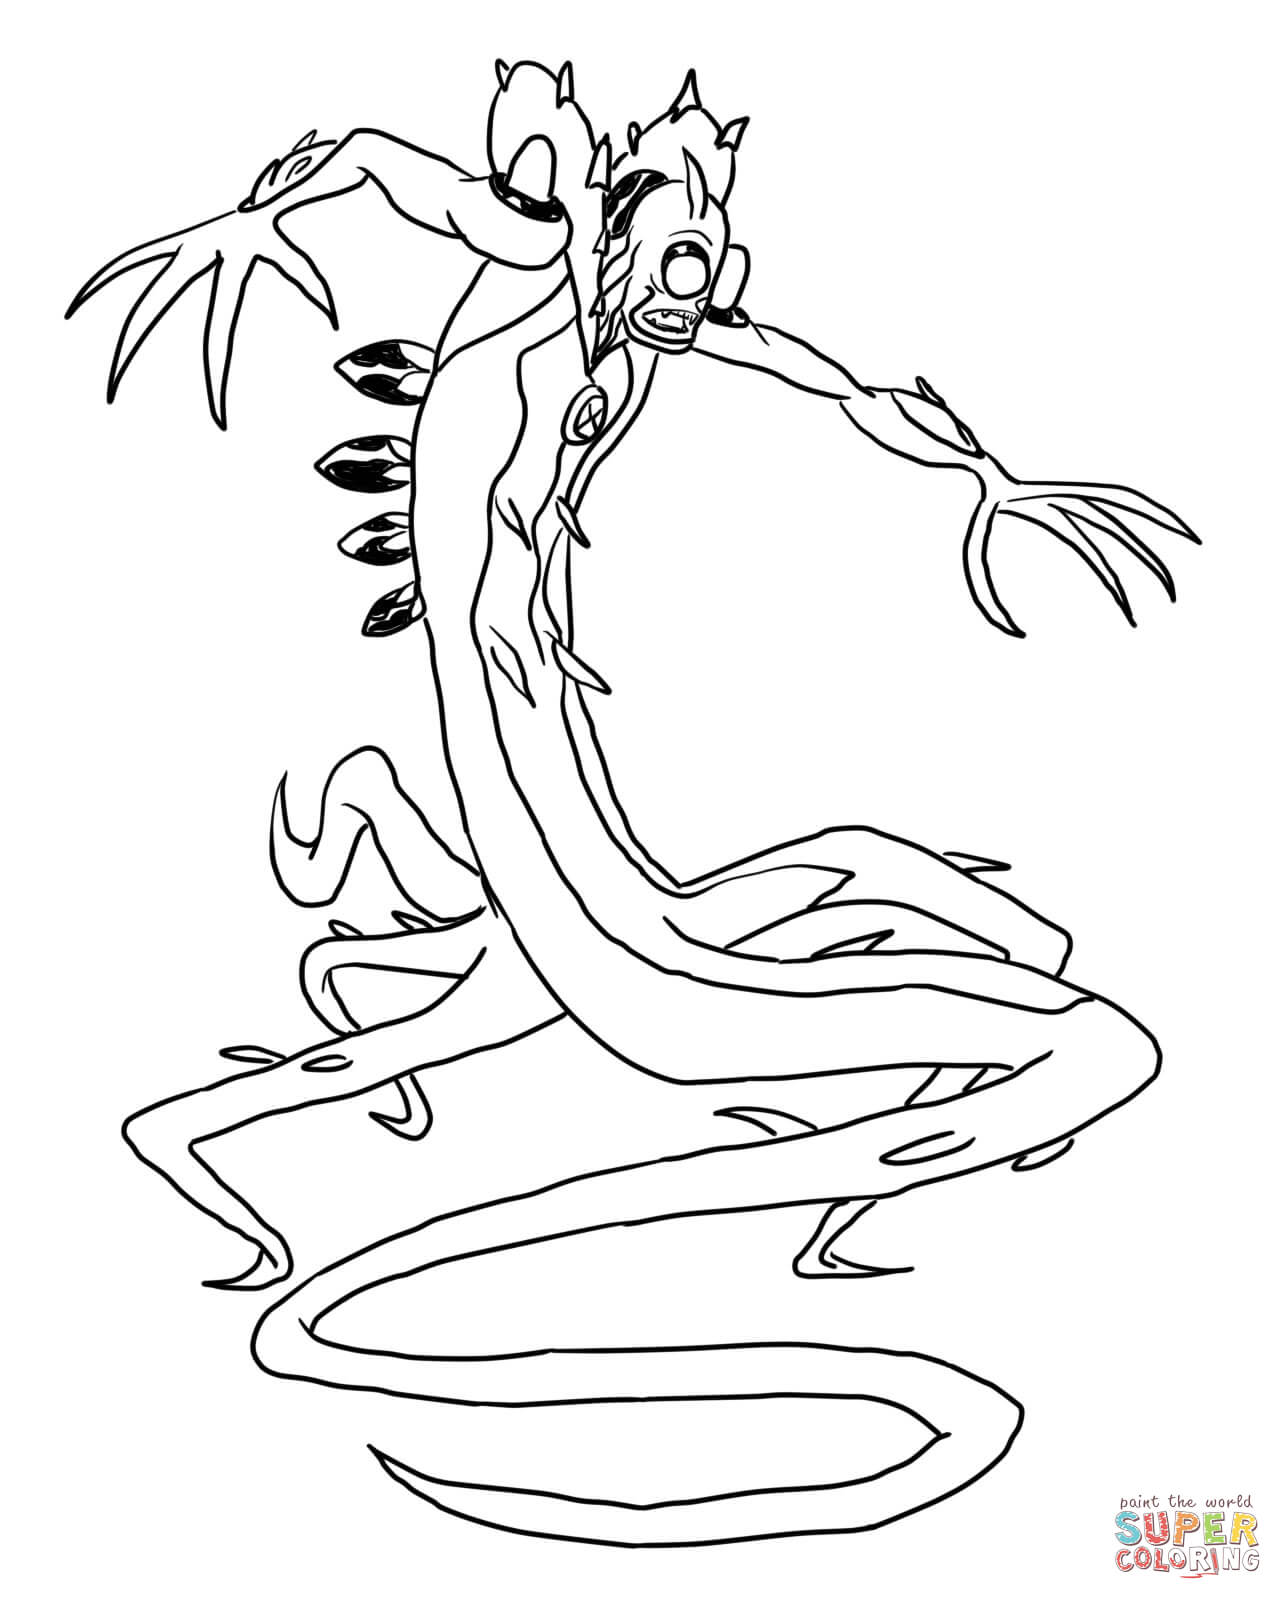 ben 10 for coloring free ben 10 coloring pages for coloring 10 ben